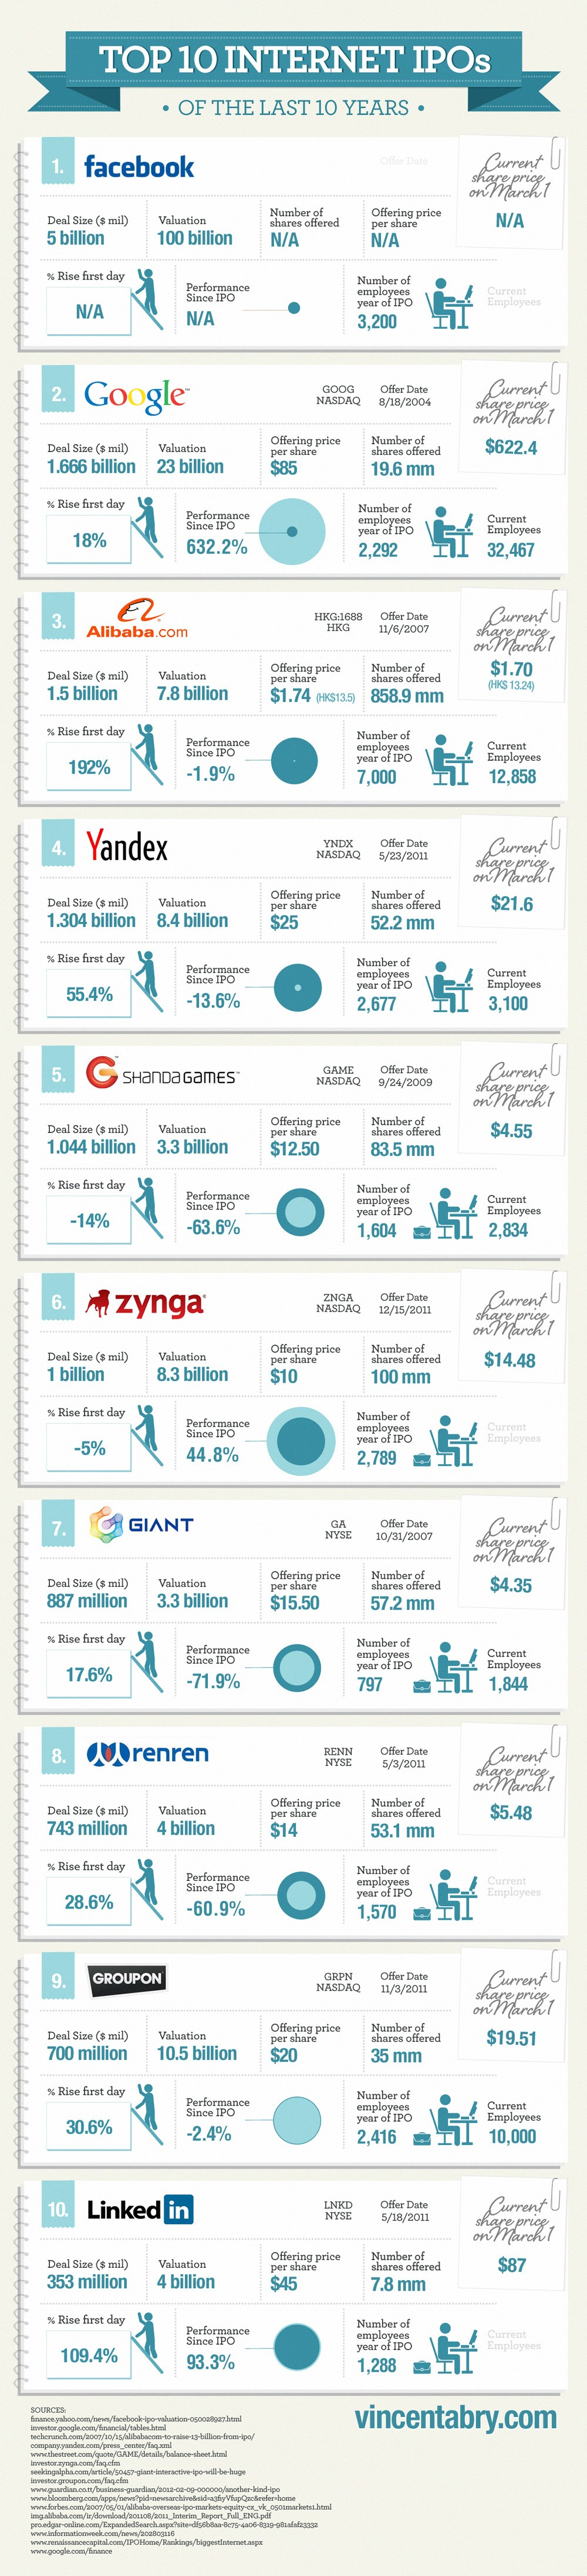 Top 10 Internet IPOs Over the Last 10 Years